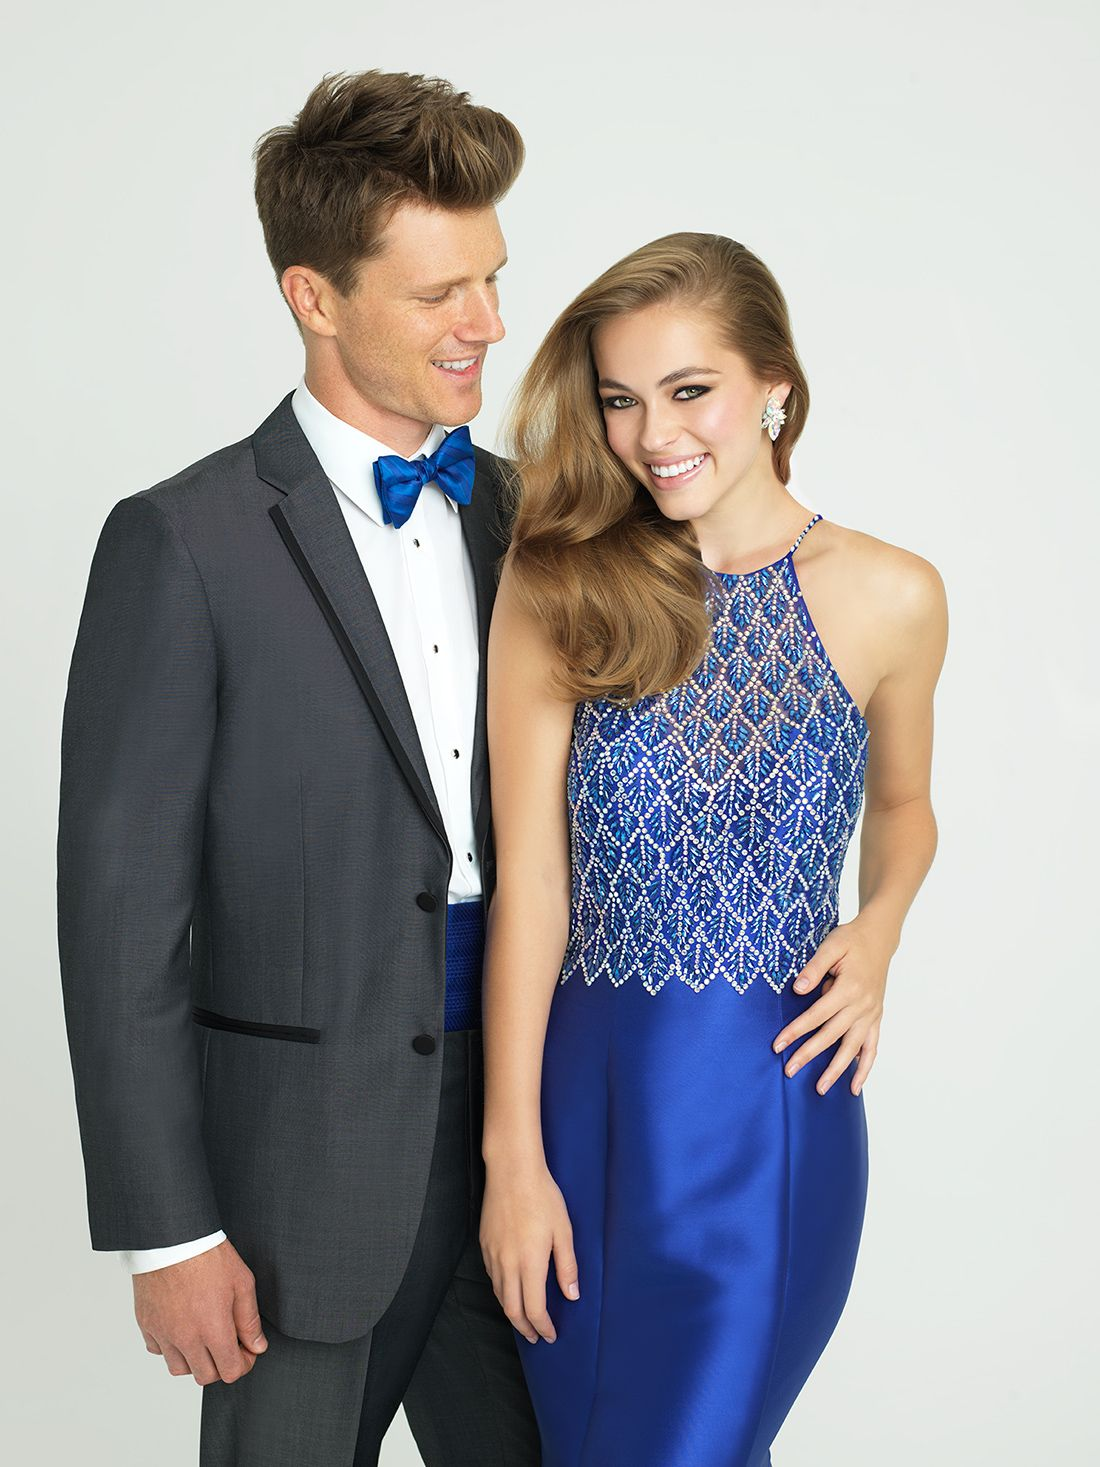 Allure Men tuxedo with a Madison James Prom Dress | Tuxedos ...